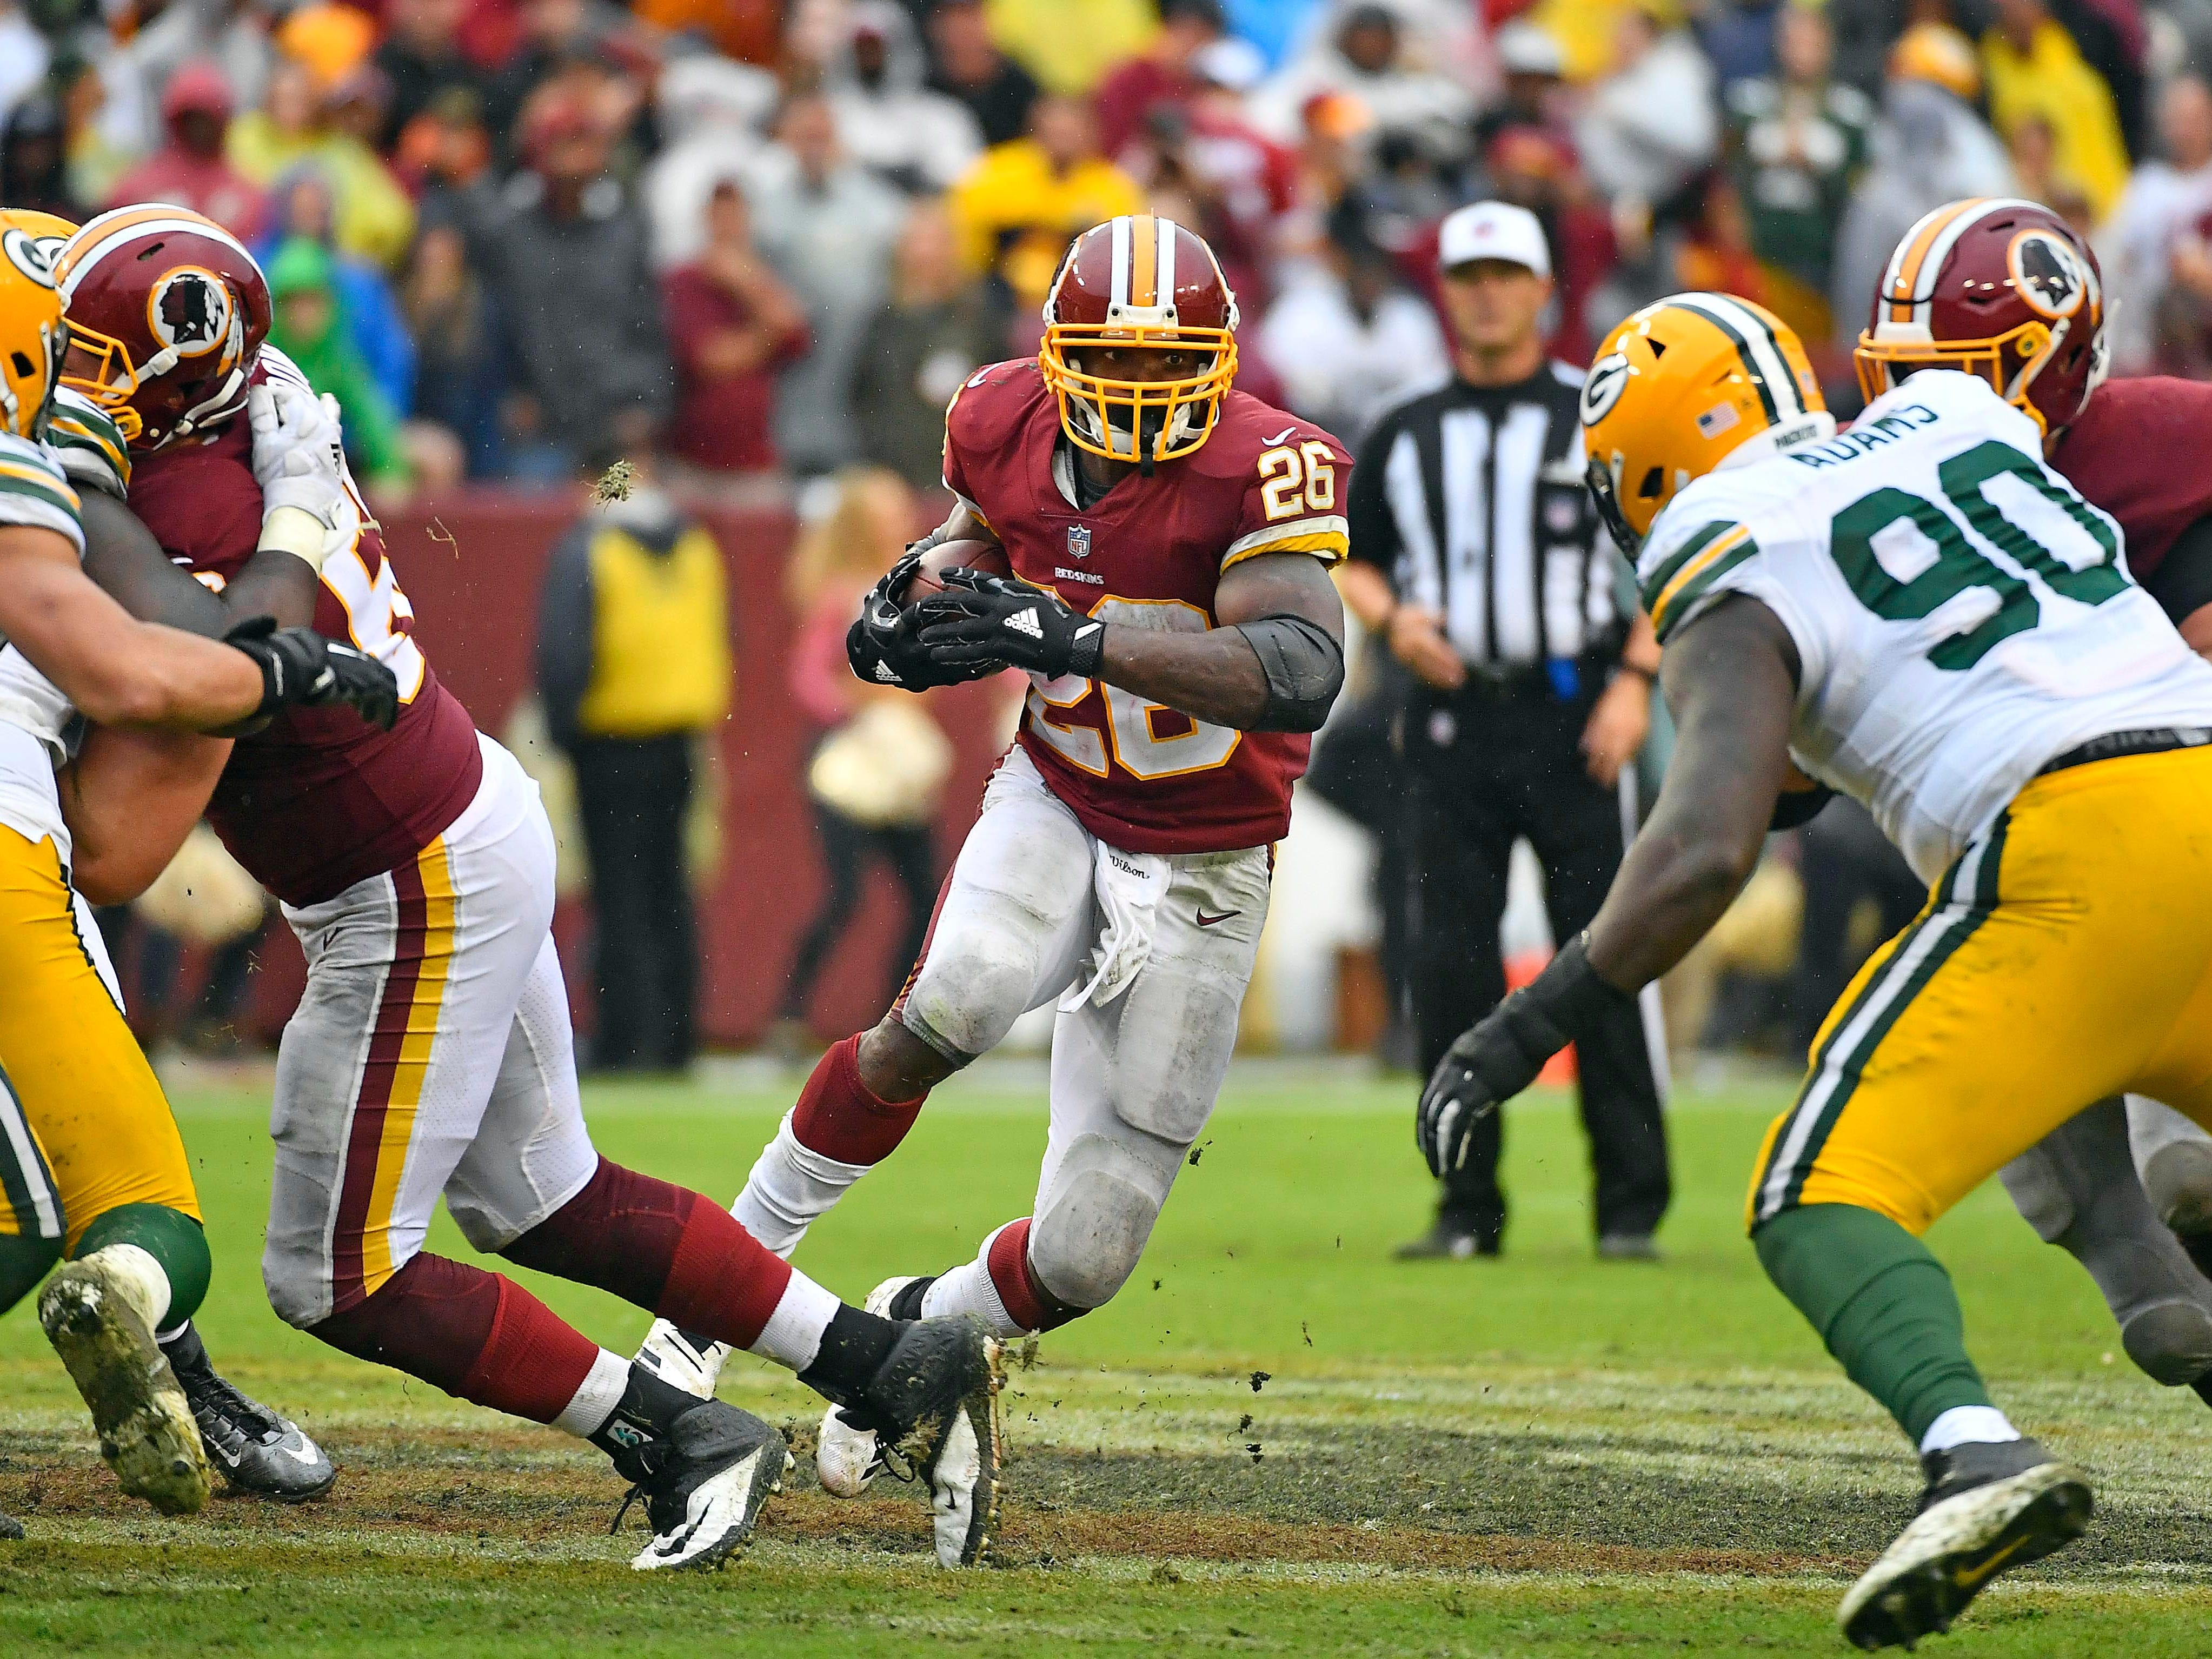 16. Redskins (24): After 50 years of alleged sellouts, on pace to sell 85% of home tickets, second-worst in NFC behind Rams and cavernous L.A. Coliseum.